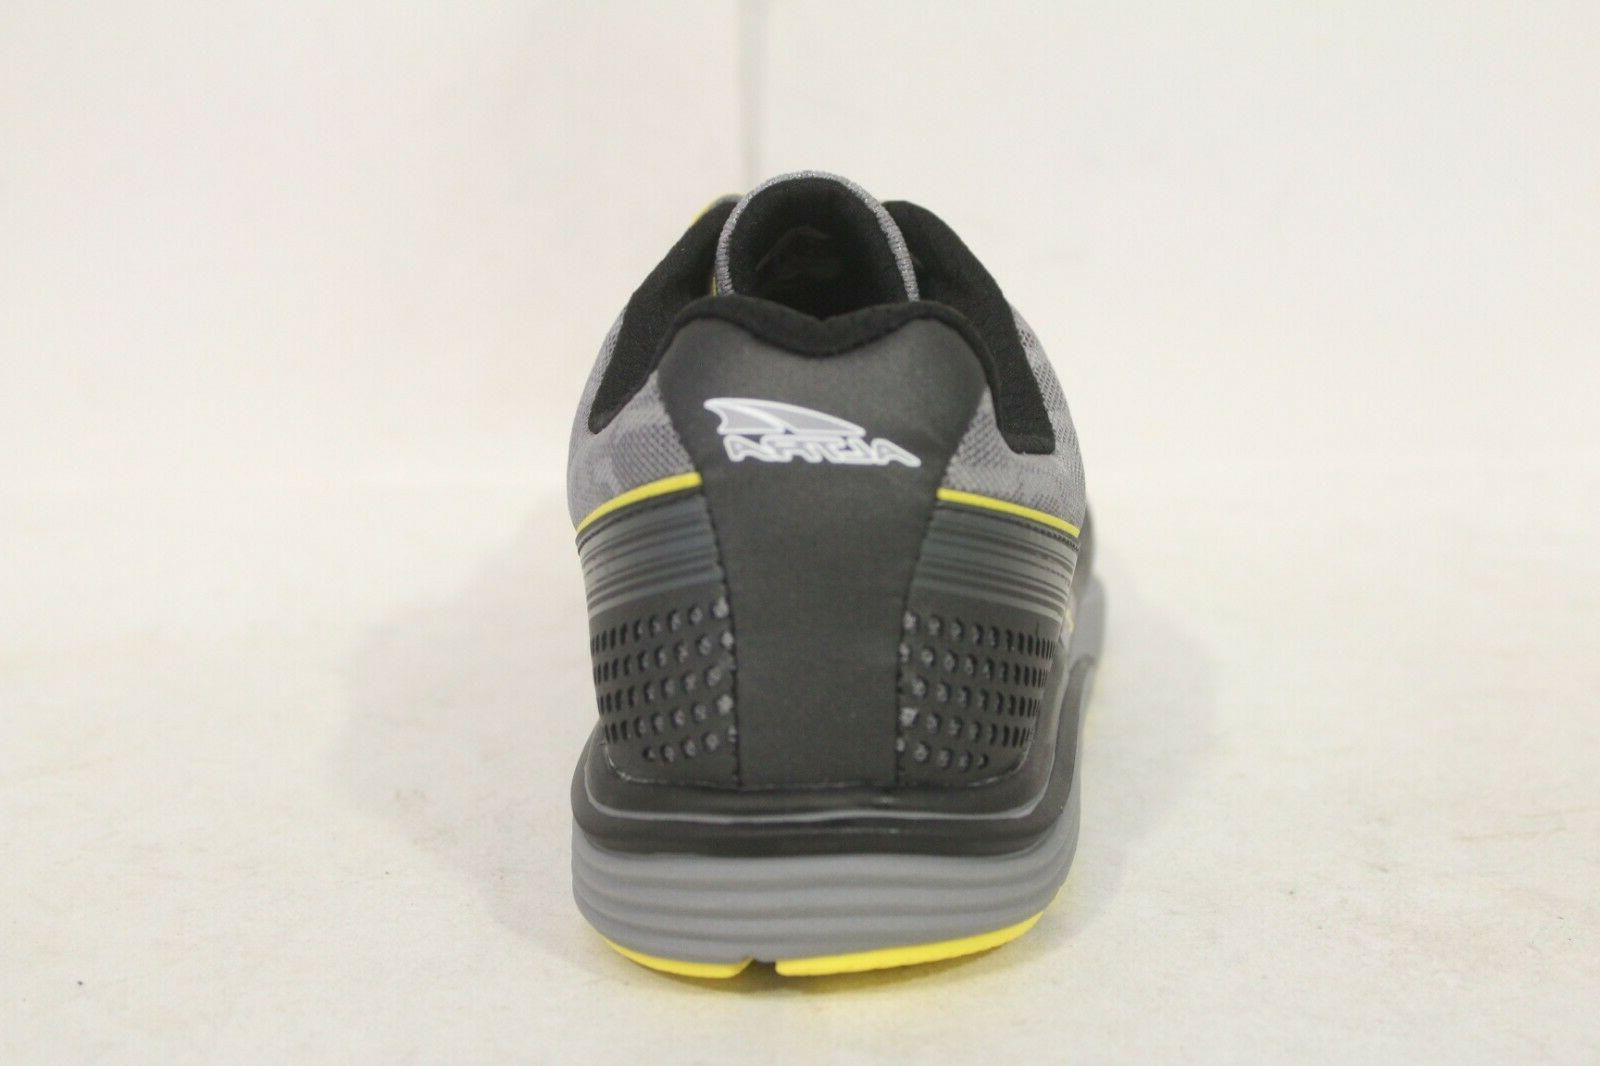 ALTRA IQ Road Shoes Sizes